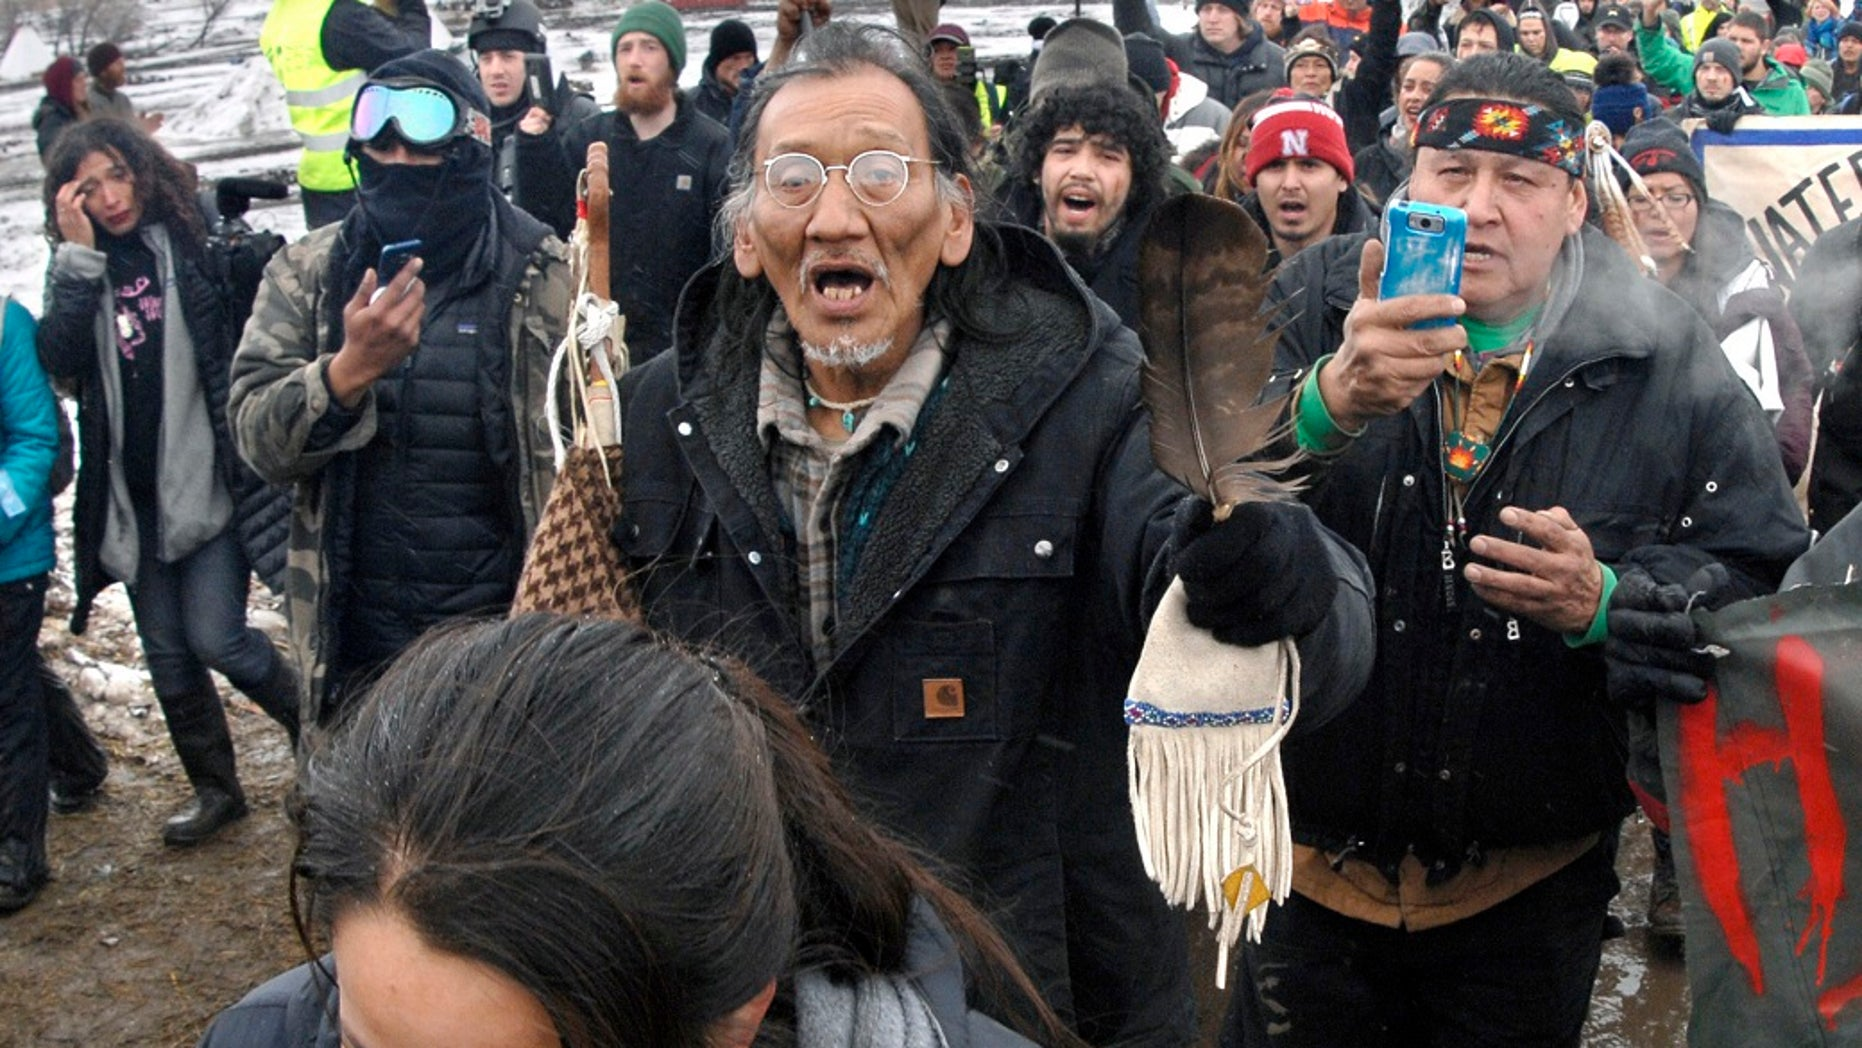 FILE - In this file photo from February 22, 2017, a large crowd marching across the Dakota Access pipeline, including Nathan Phillips, center with goggles, marching out of the Oceti Sakowin camp before the deadline ends up evacuating a large portion of the protesters of the camp near Cannon Ball, ND (Associated Press)